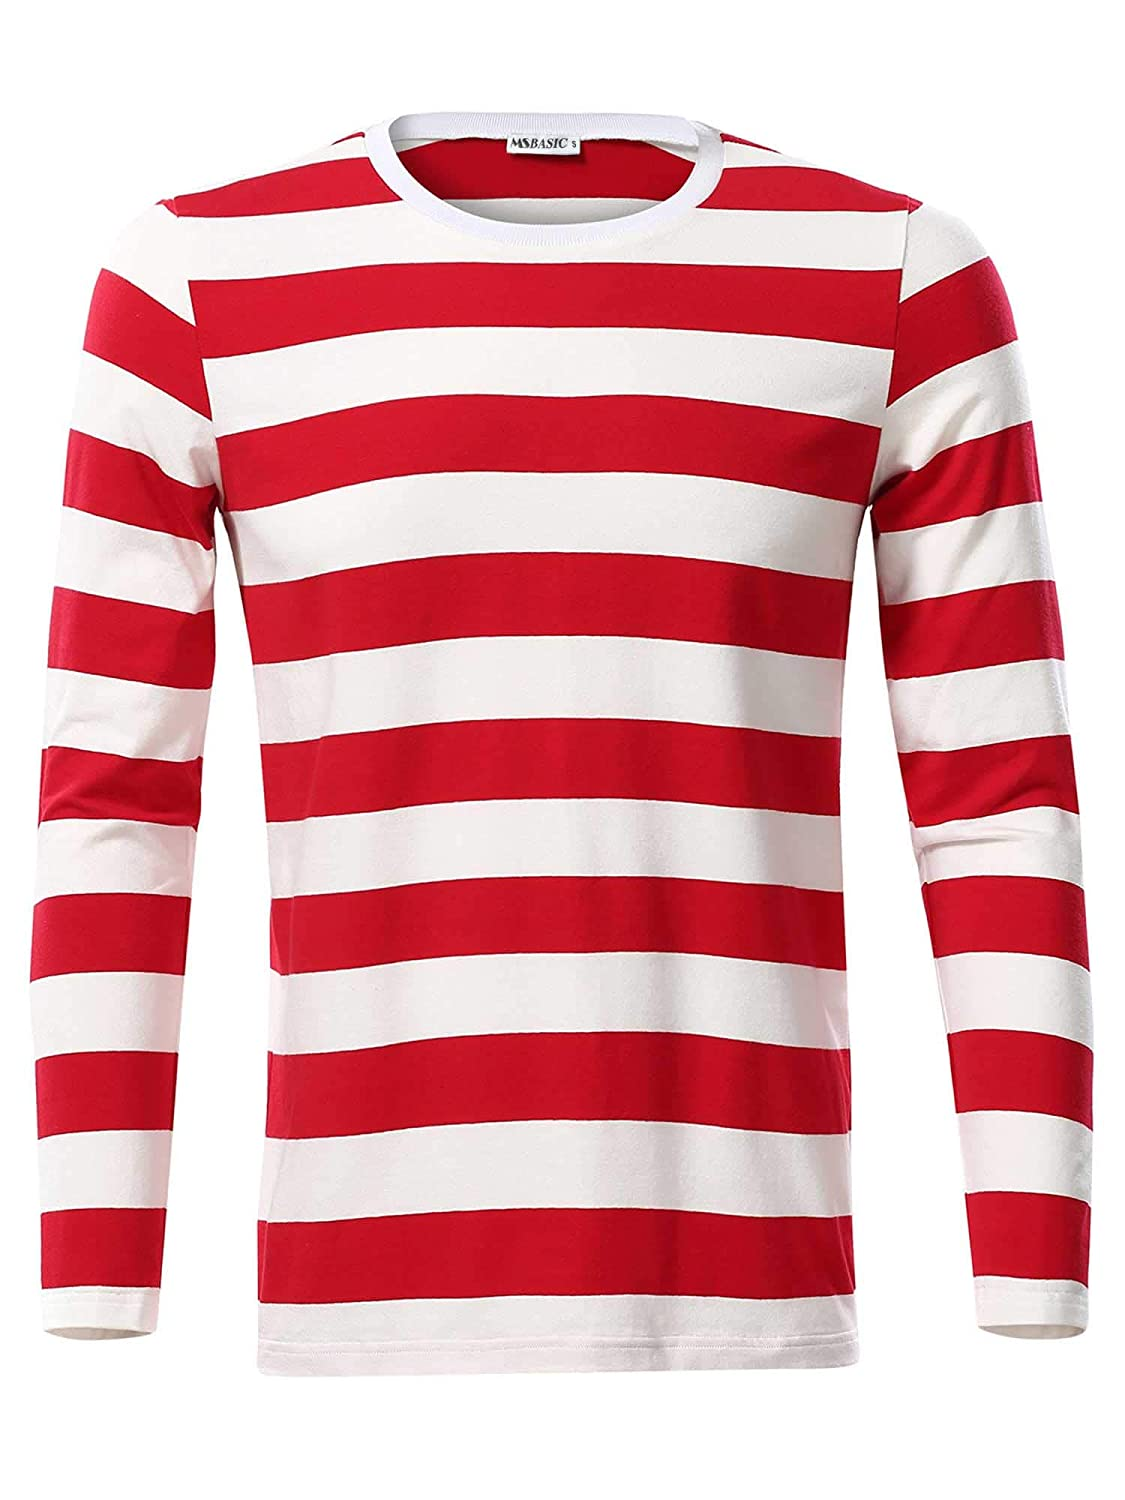 MSBASIC Mens Casual Long Sleeve Tops Striped Cotton T-Shirt